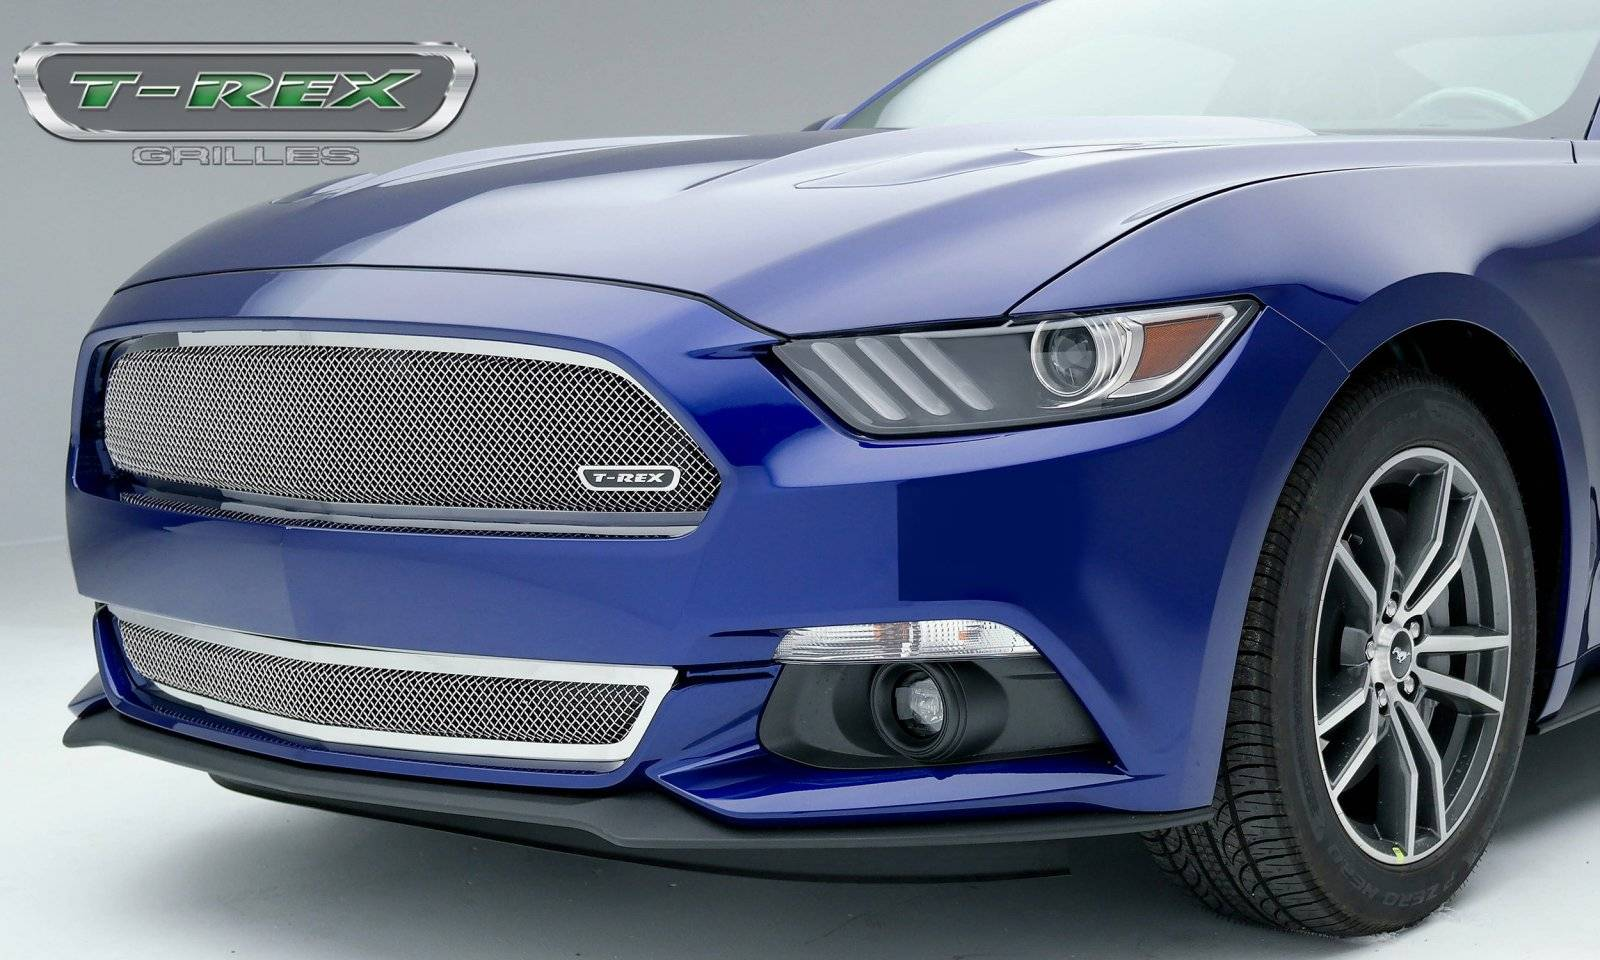 T-REX Ford Mustang GT  Upper Class, Formed Mesh Grille, Bumper, Overlay, 1 Pc, Polished Stainless Steel - Pt # 55530